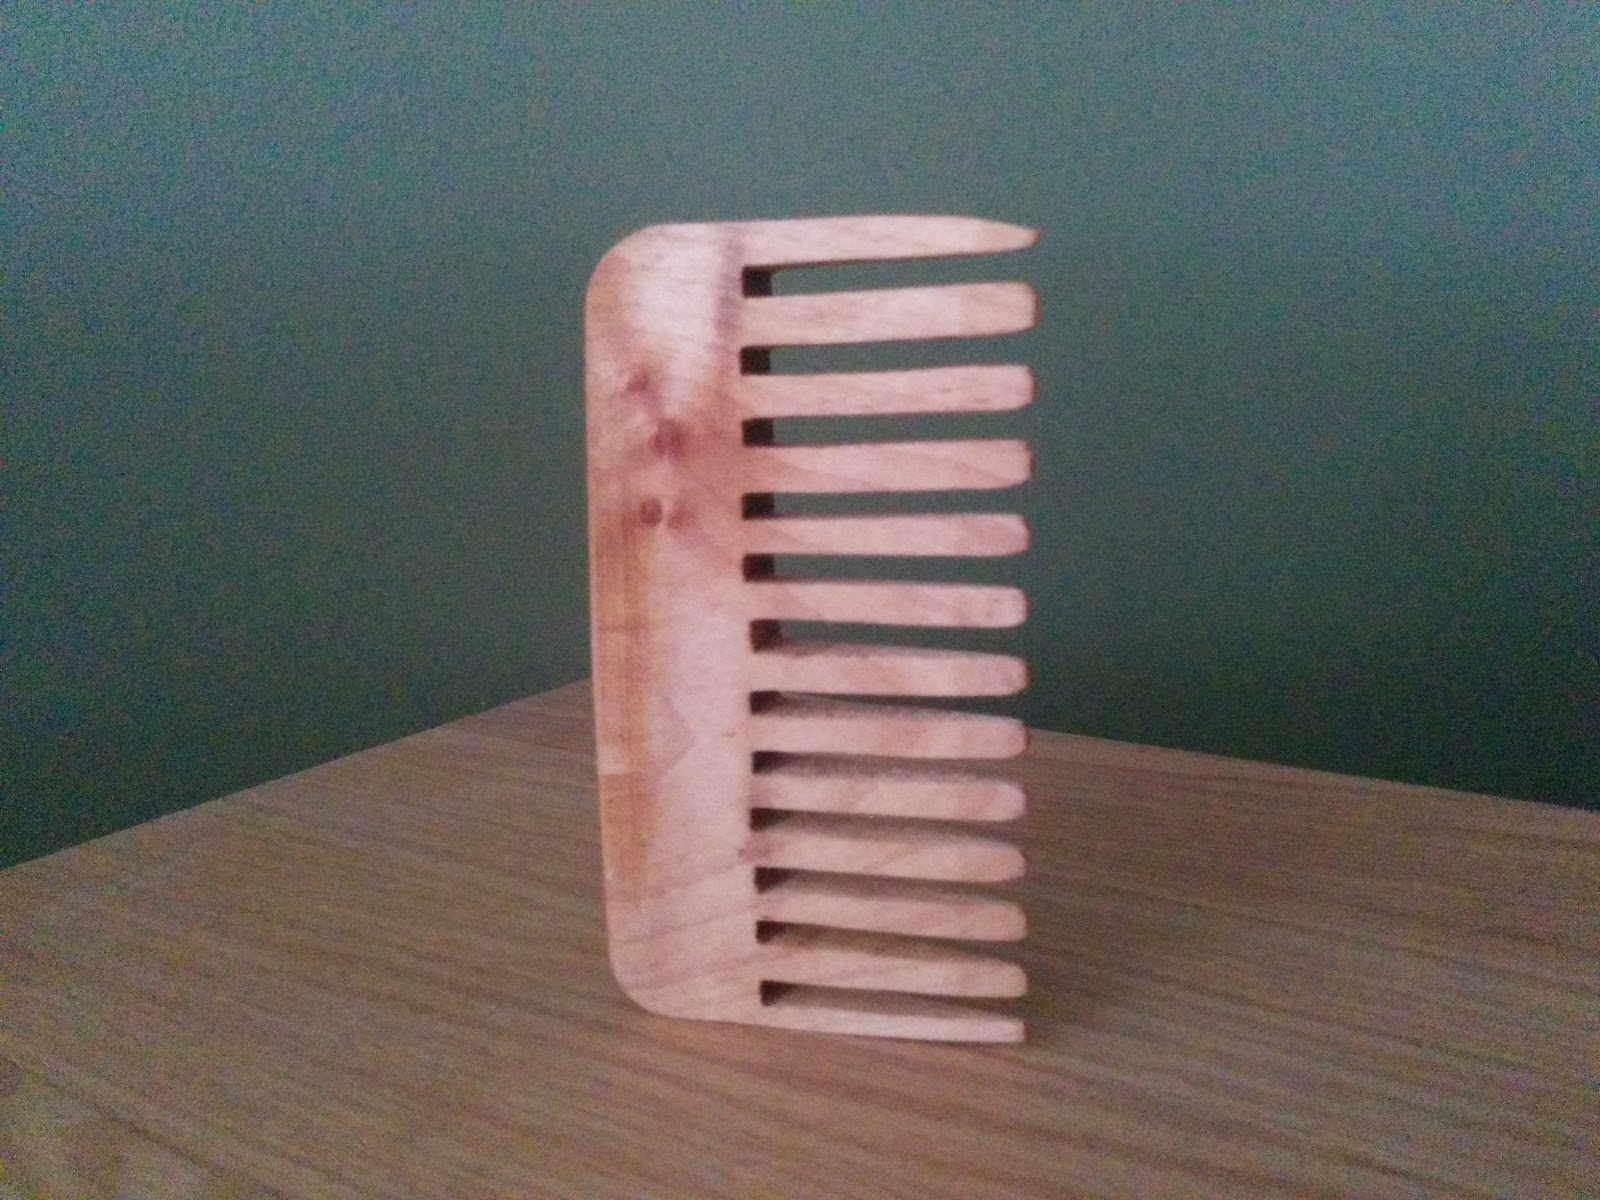 Beard Comb finished product2.jpg